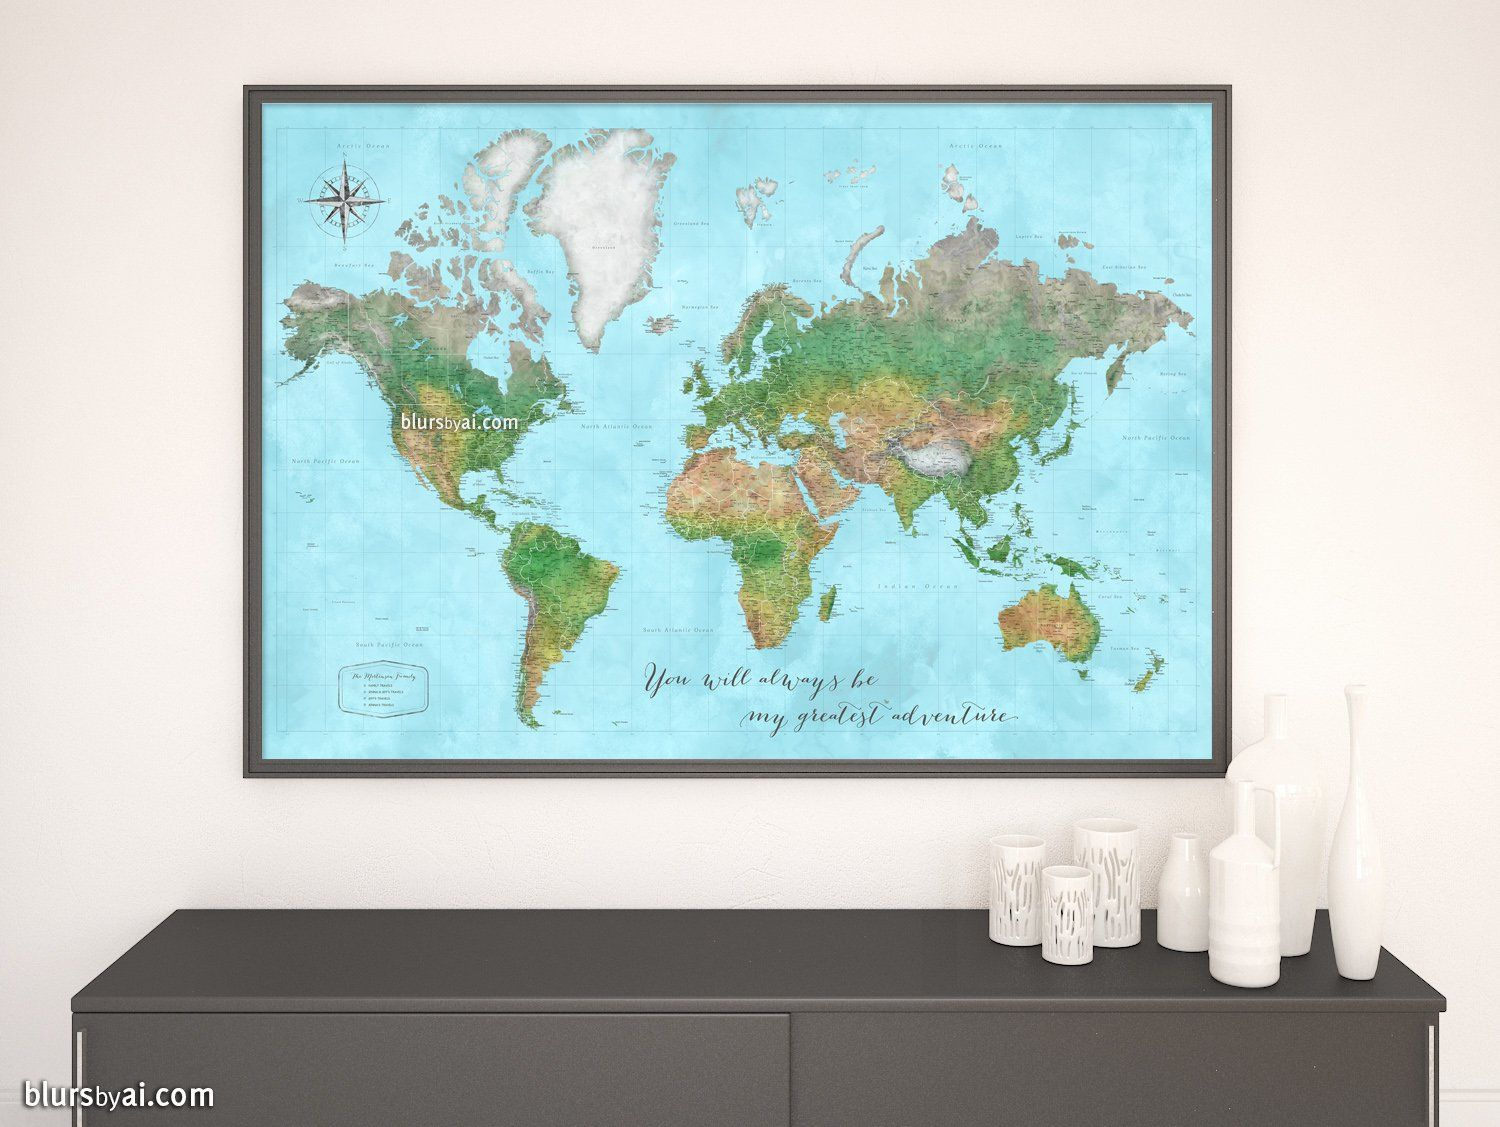 Custom world map print - highly detailed map with cities in ... on